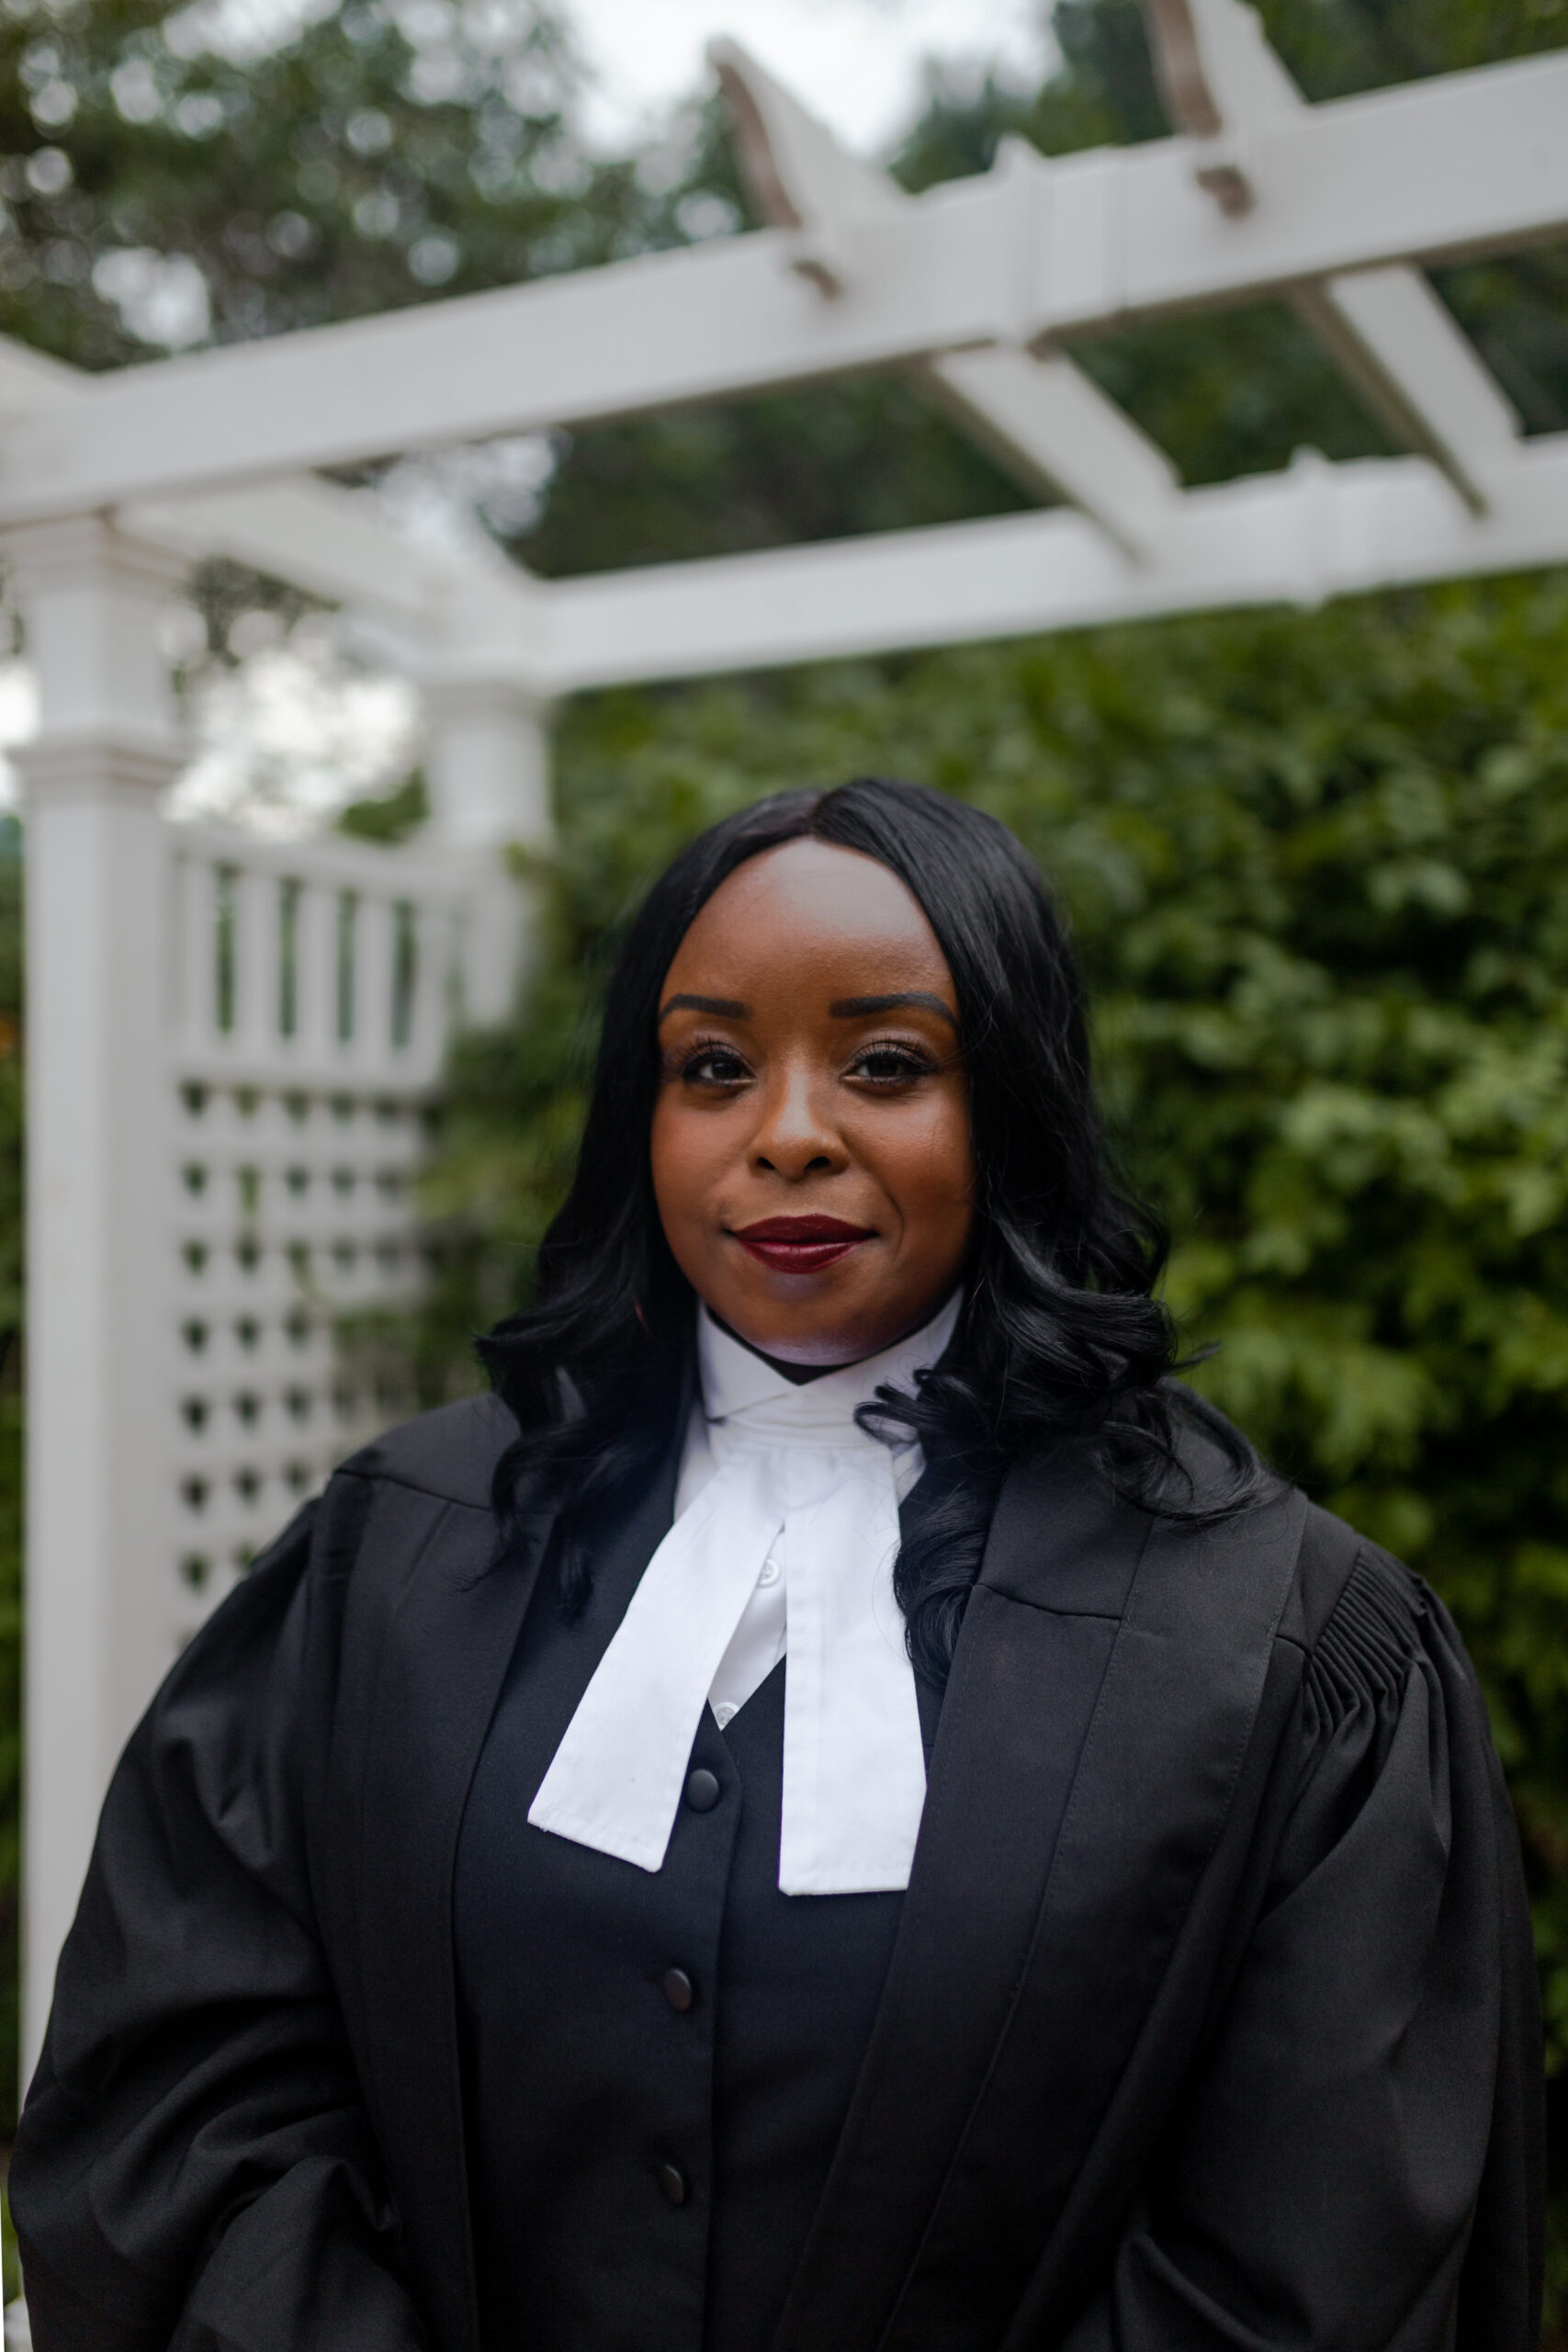 Samantha Peters in judicial robes